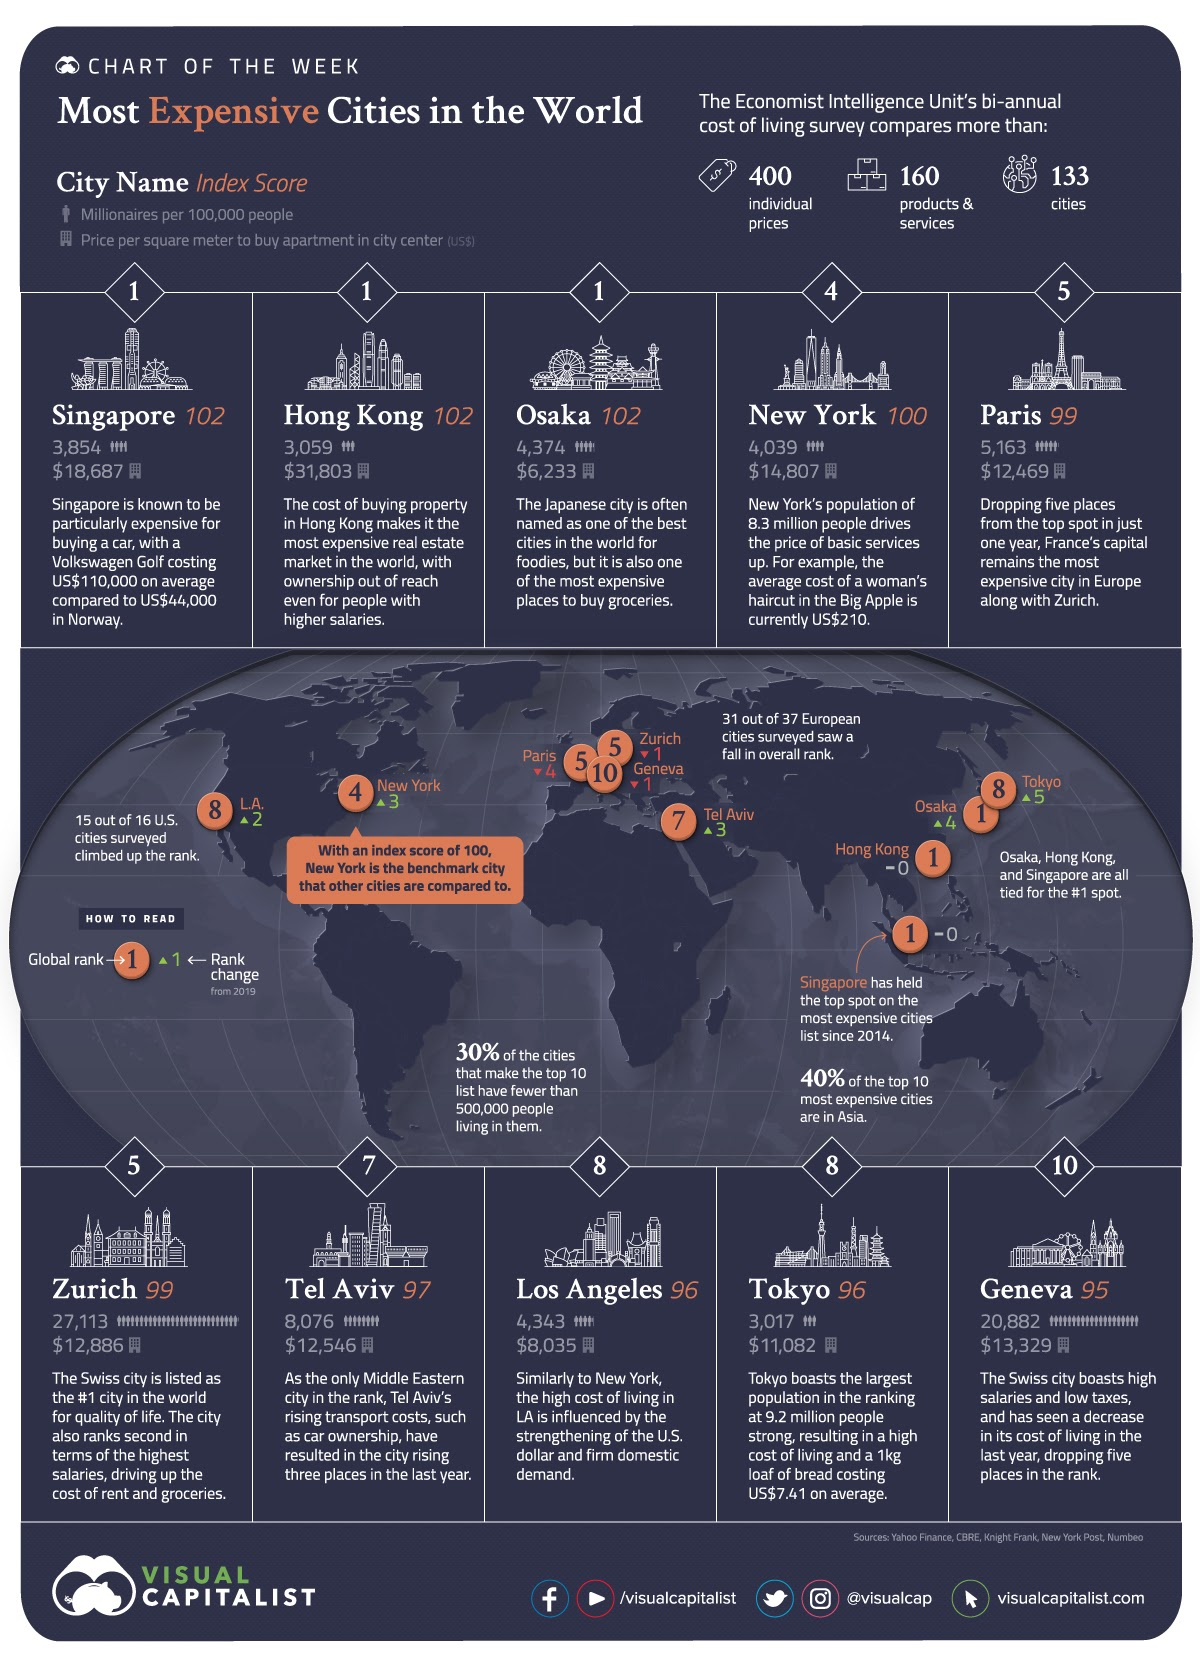 The Most Expensive Cities in the World #Infographic